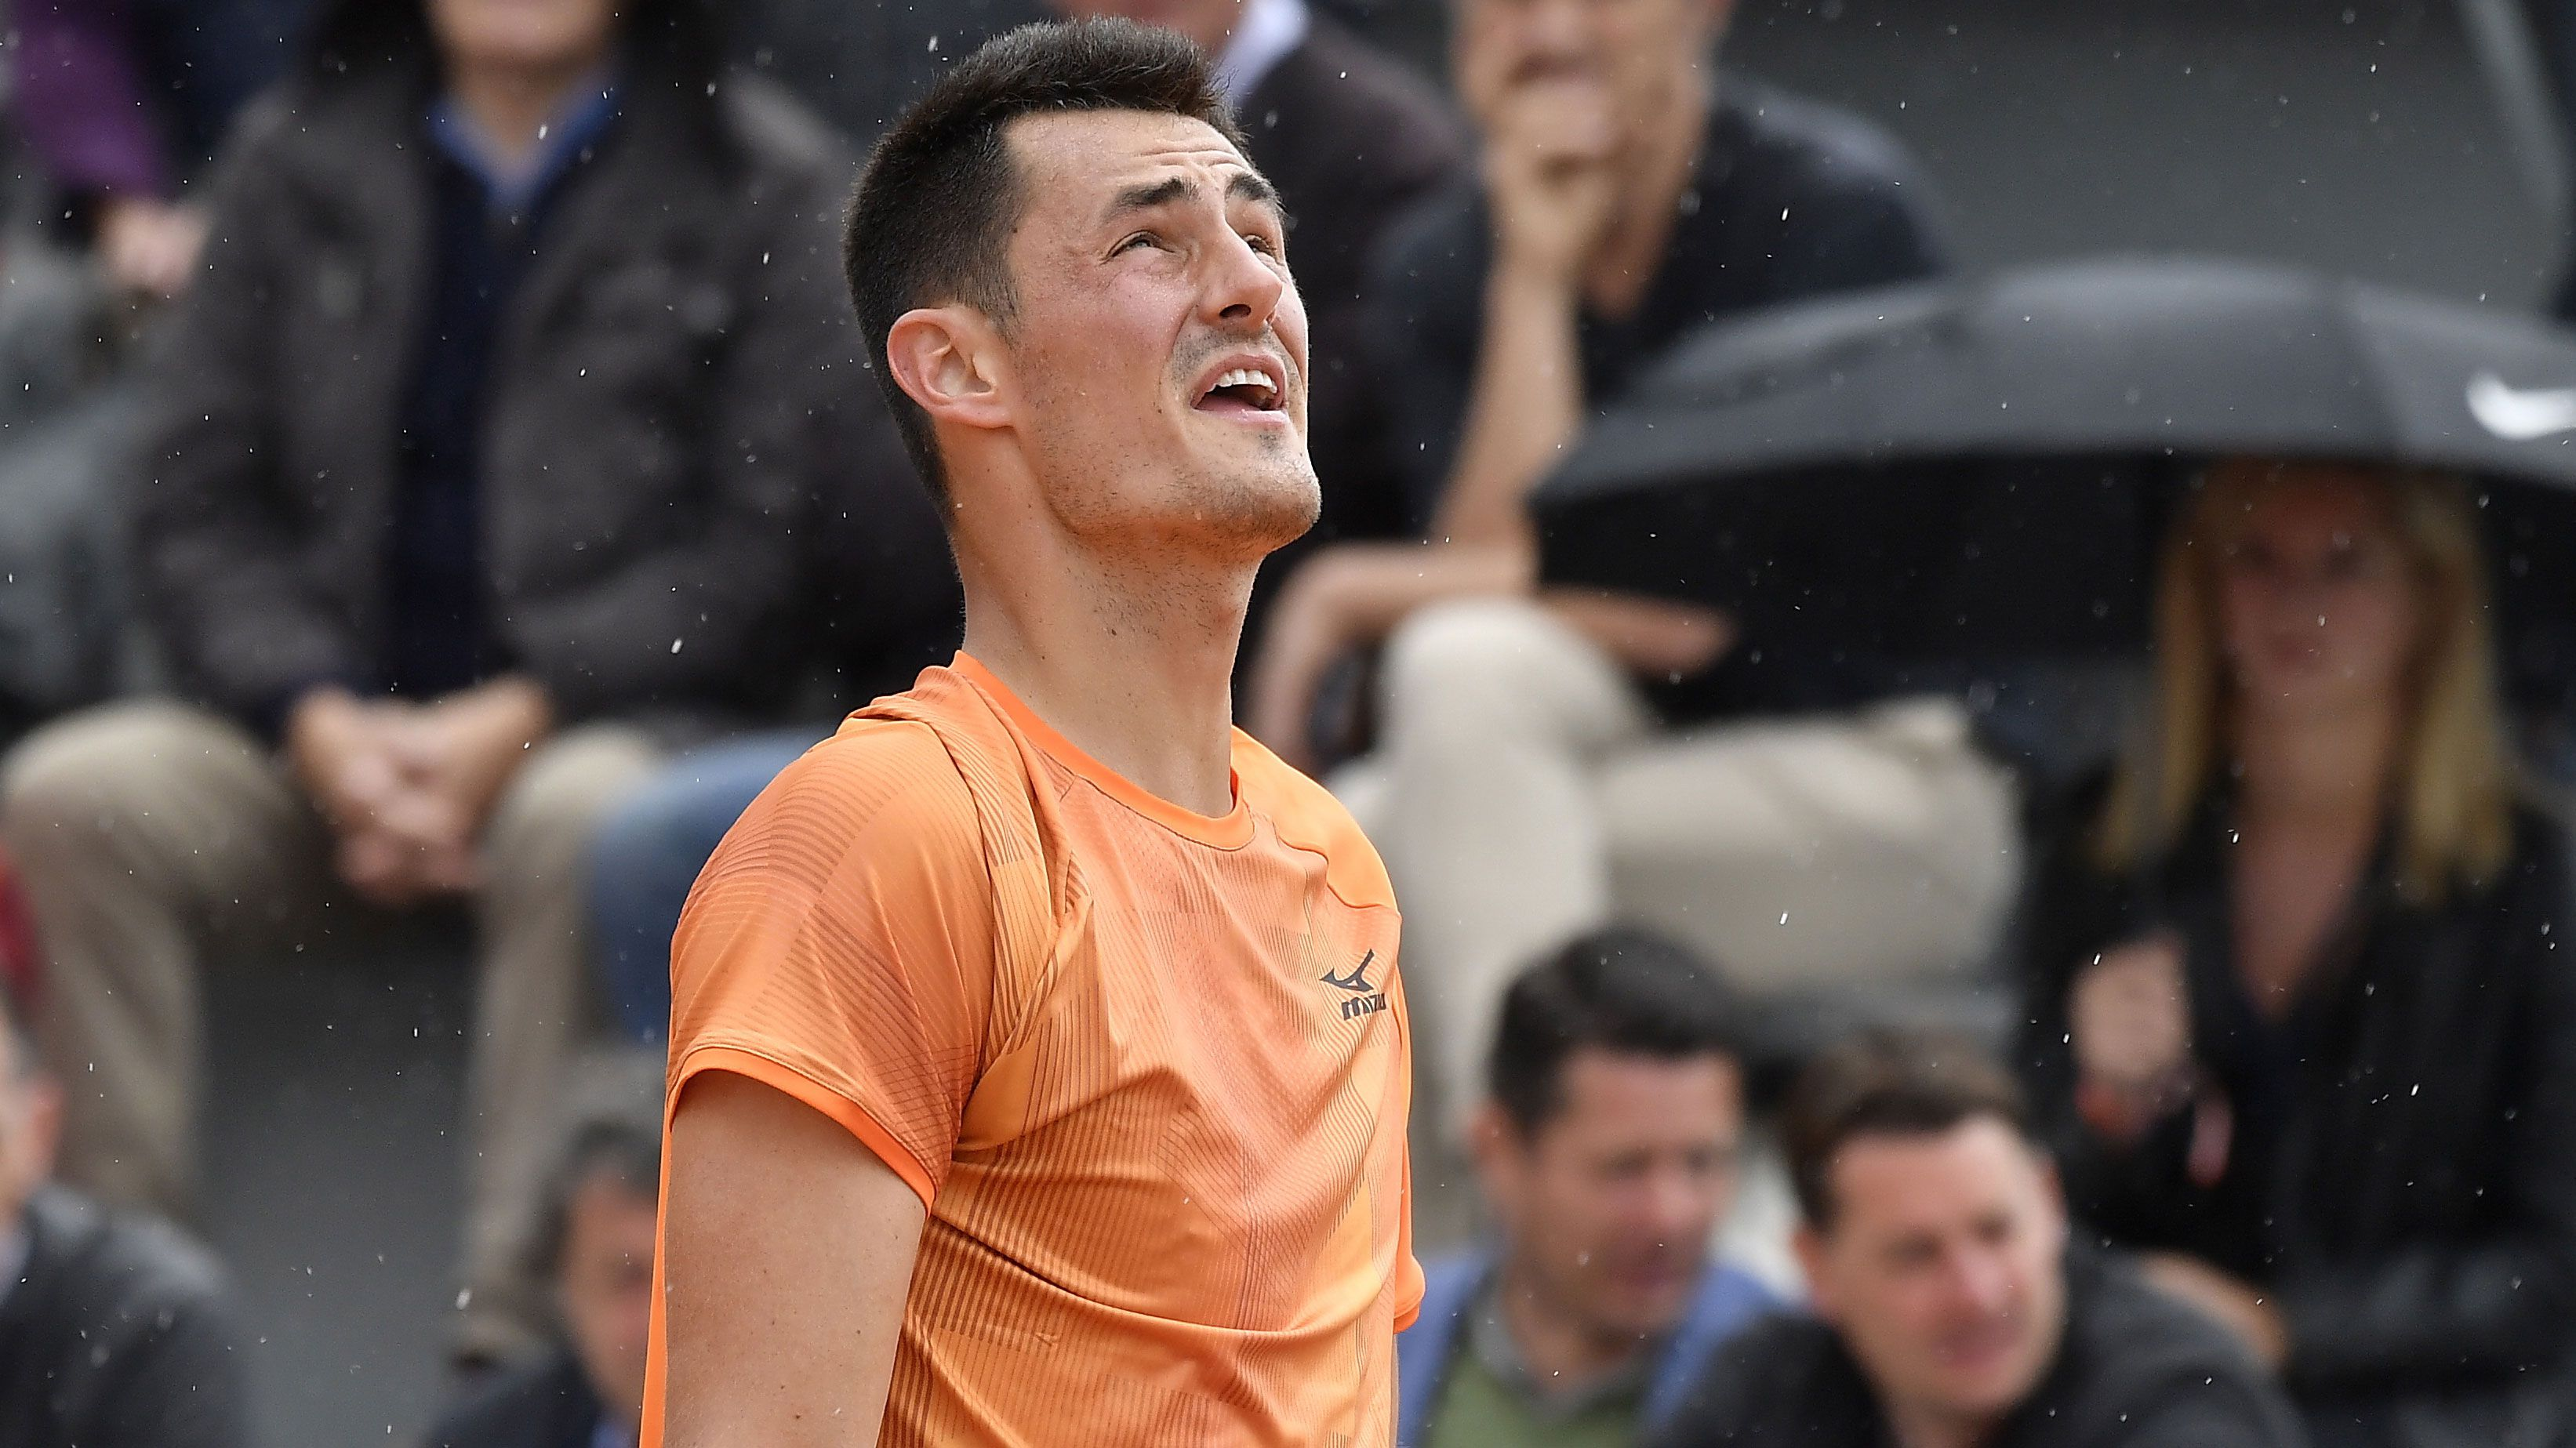 'Take a year out': Bernard Tomic urged to take drastic action after French Open fail